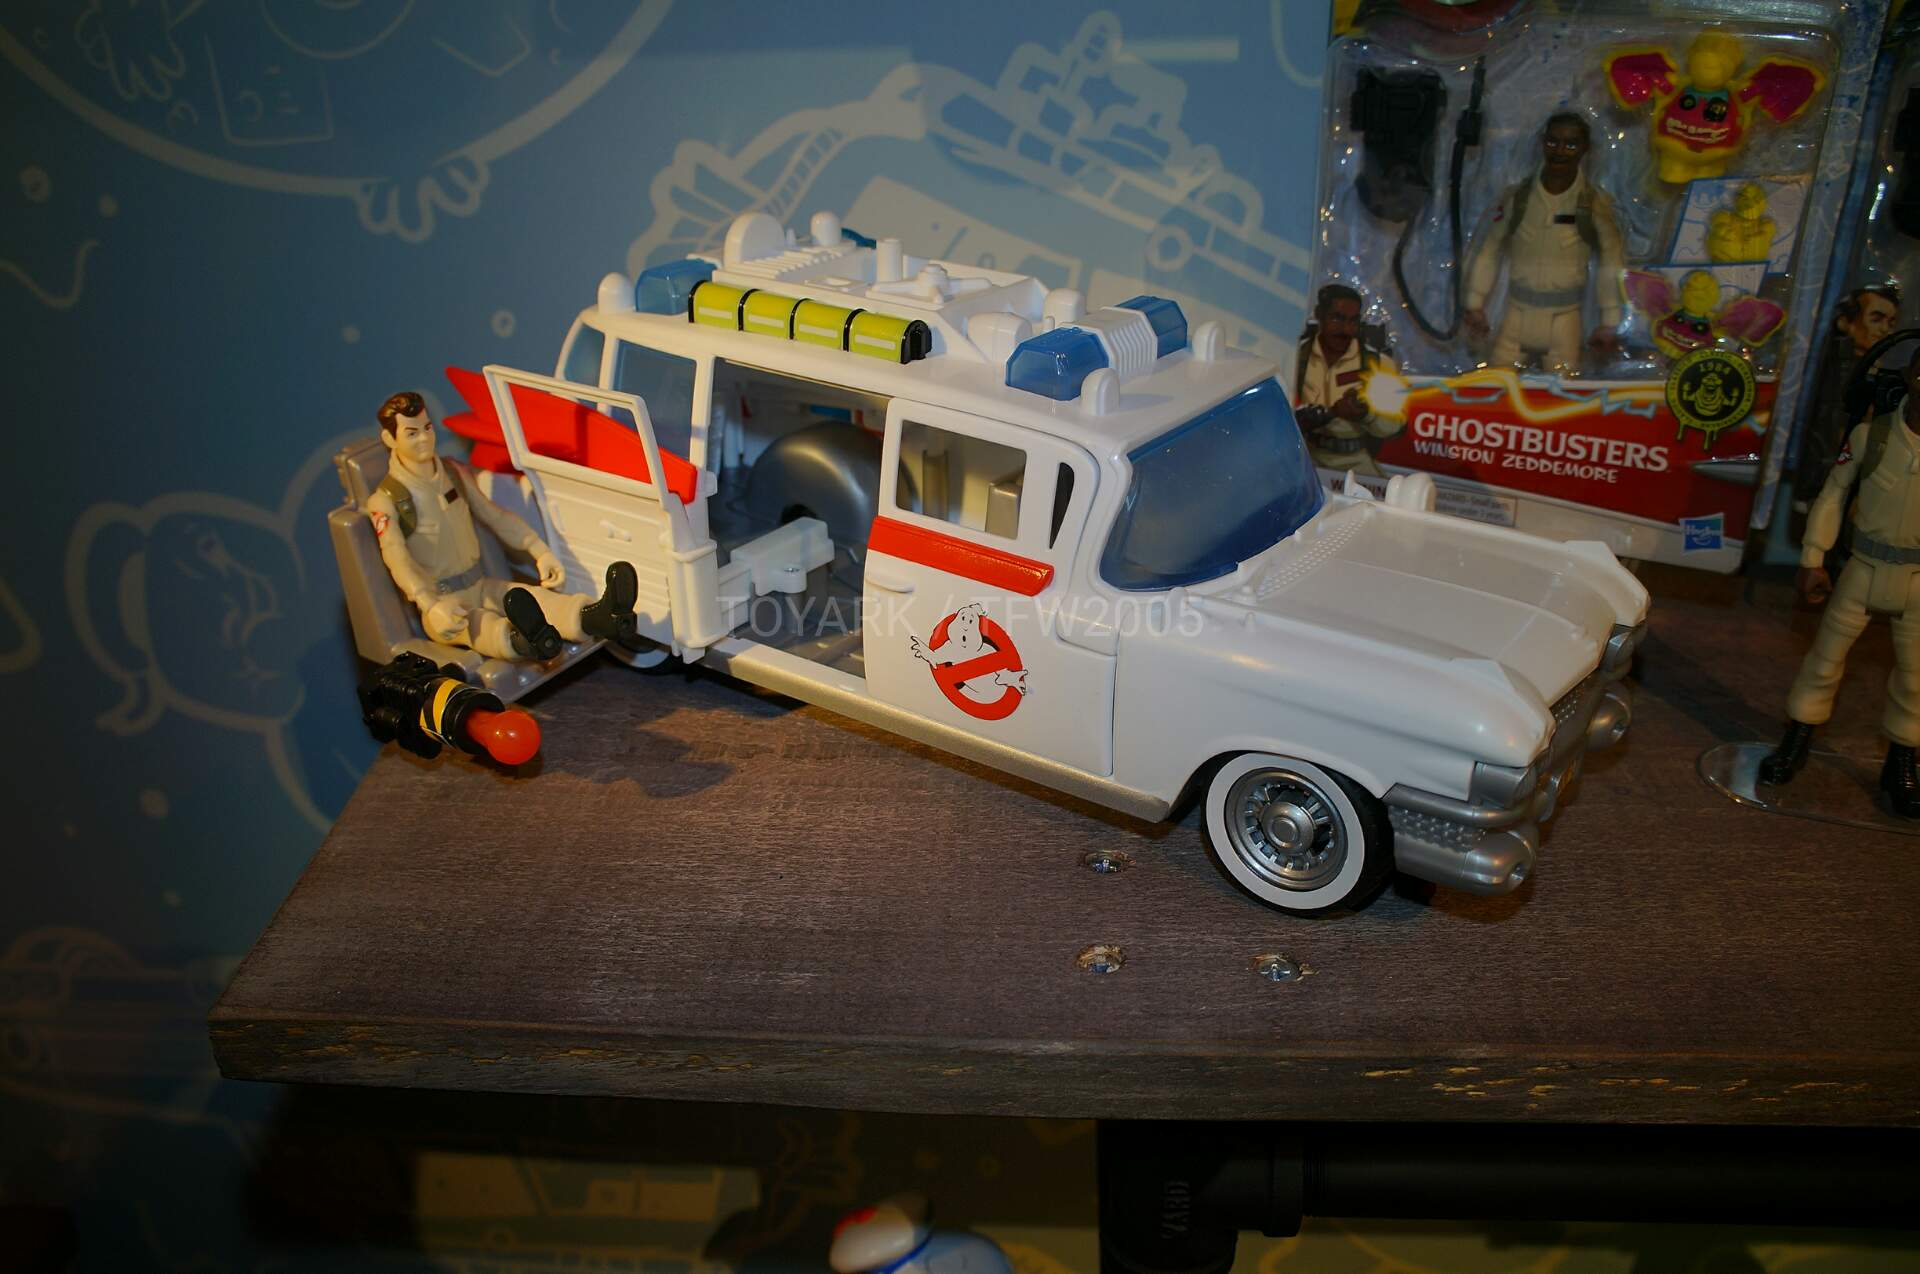 Toy-Fair-2020-Hasbro-Ghostbusters-066.jpg